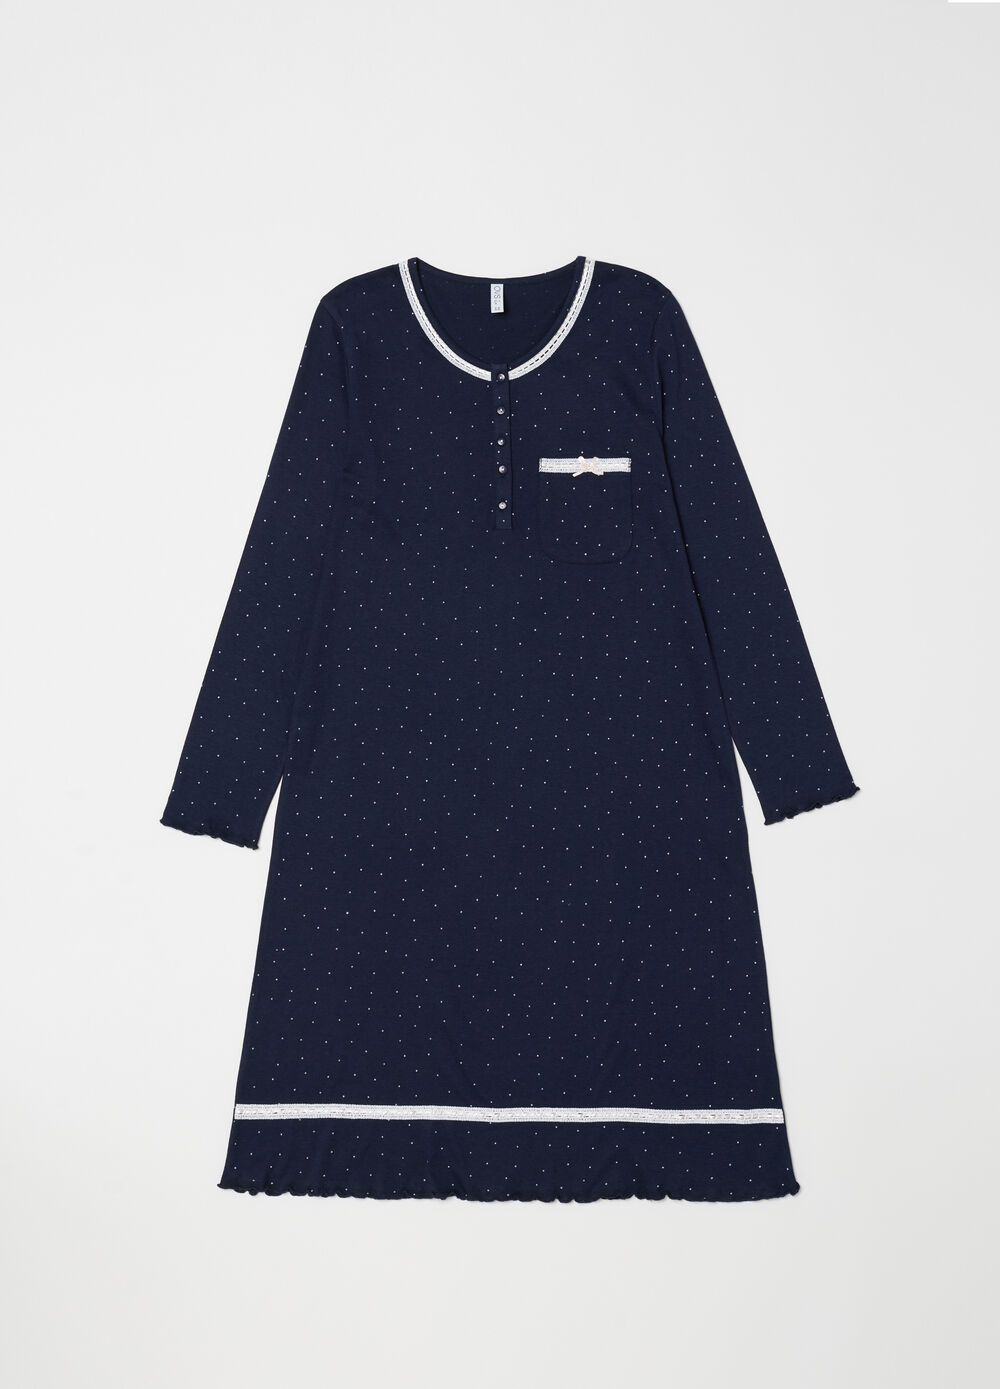 Nightshirt with polka dot satin trims